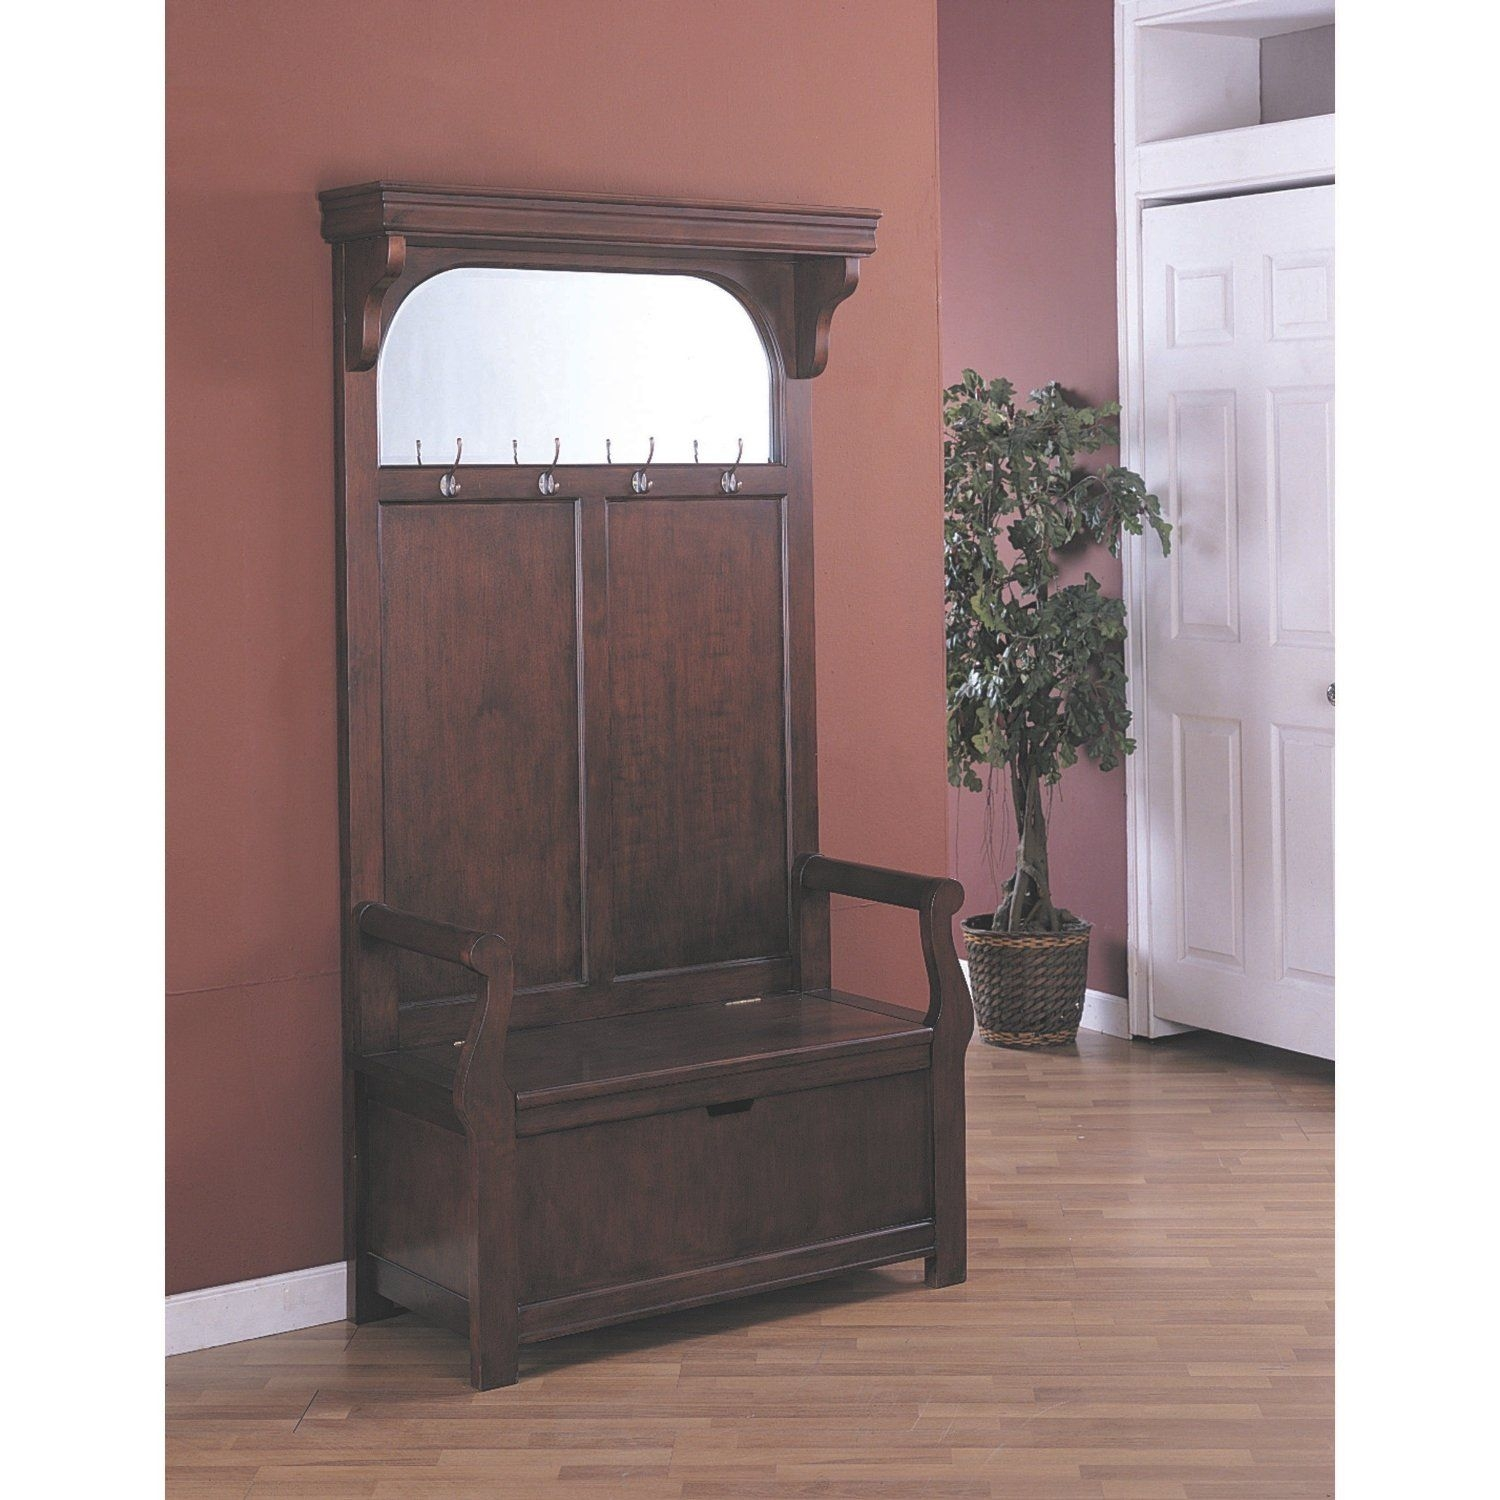 Cherry Entryway Wood Hall Tree Coat Rack Storage Bench